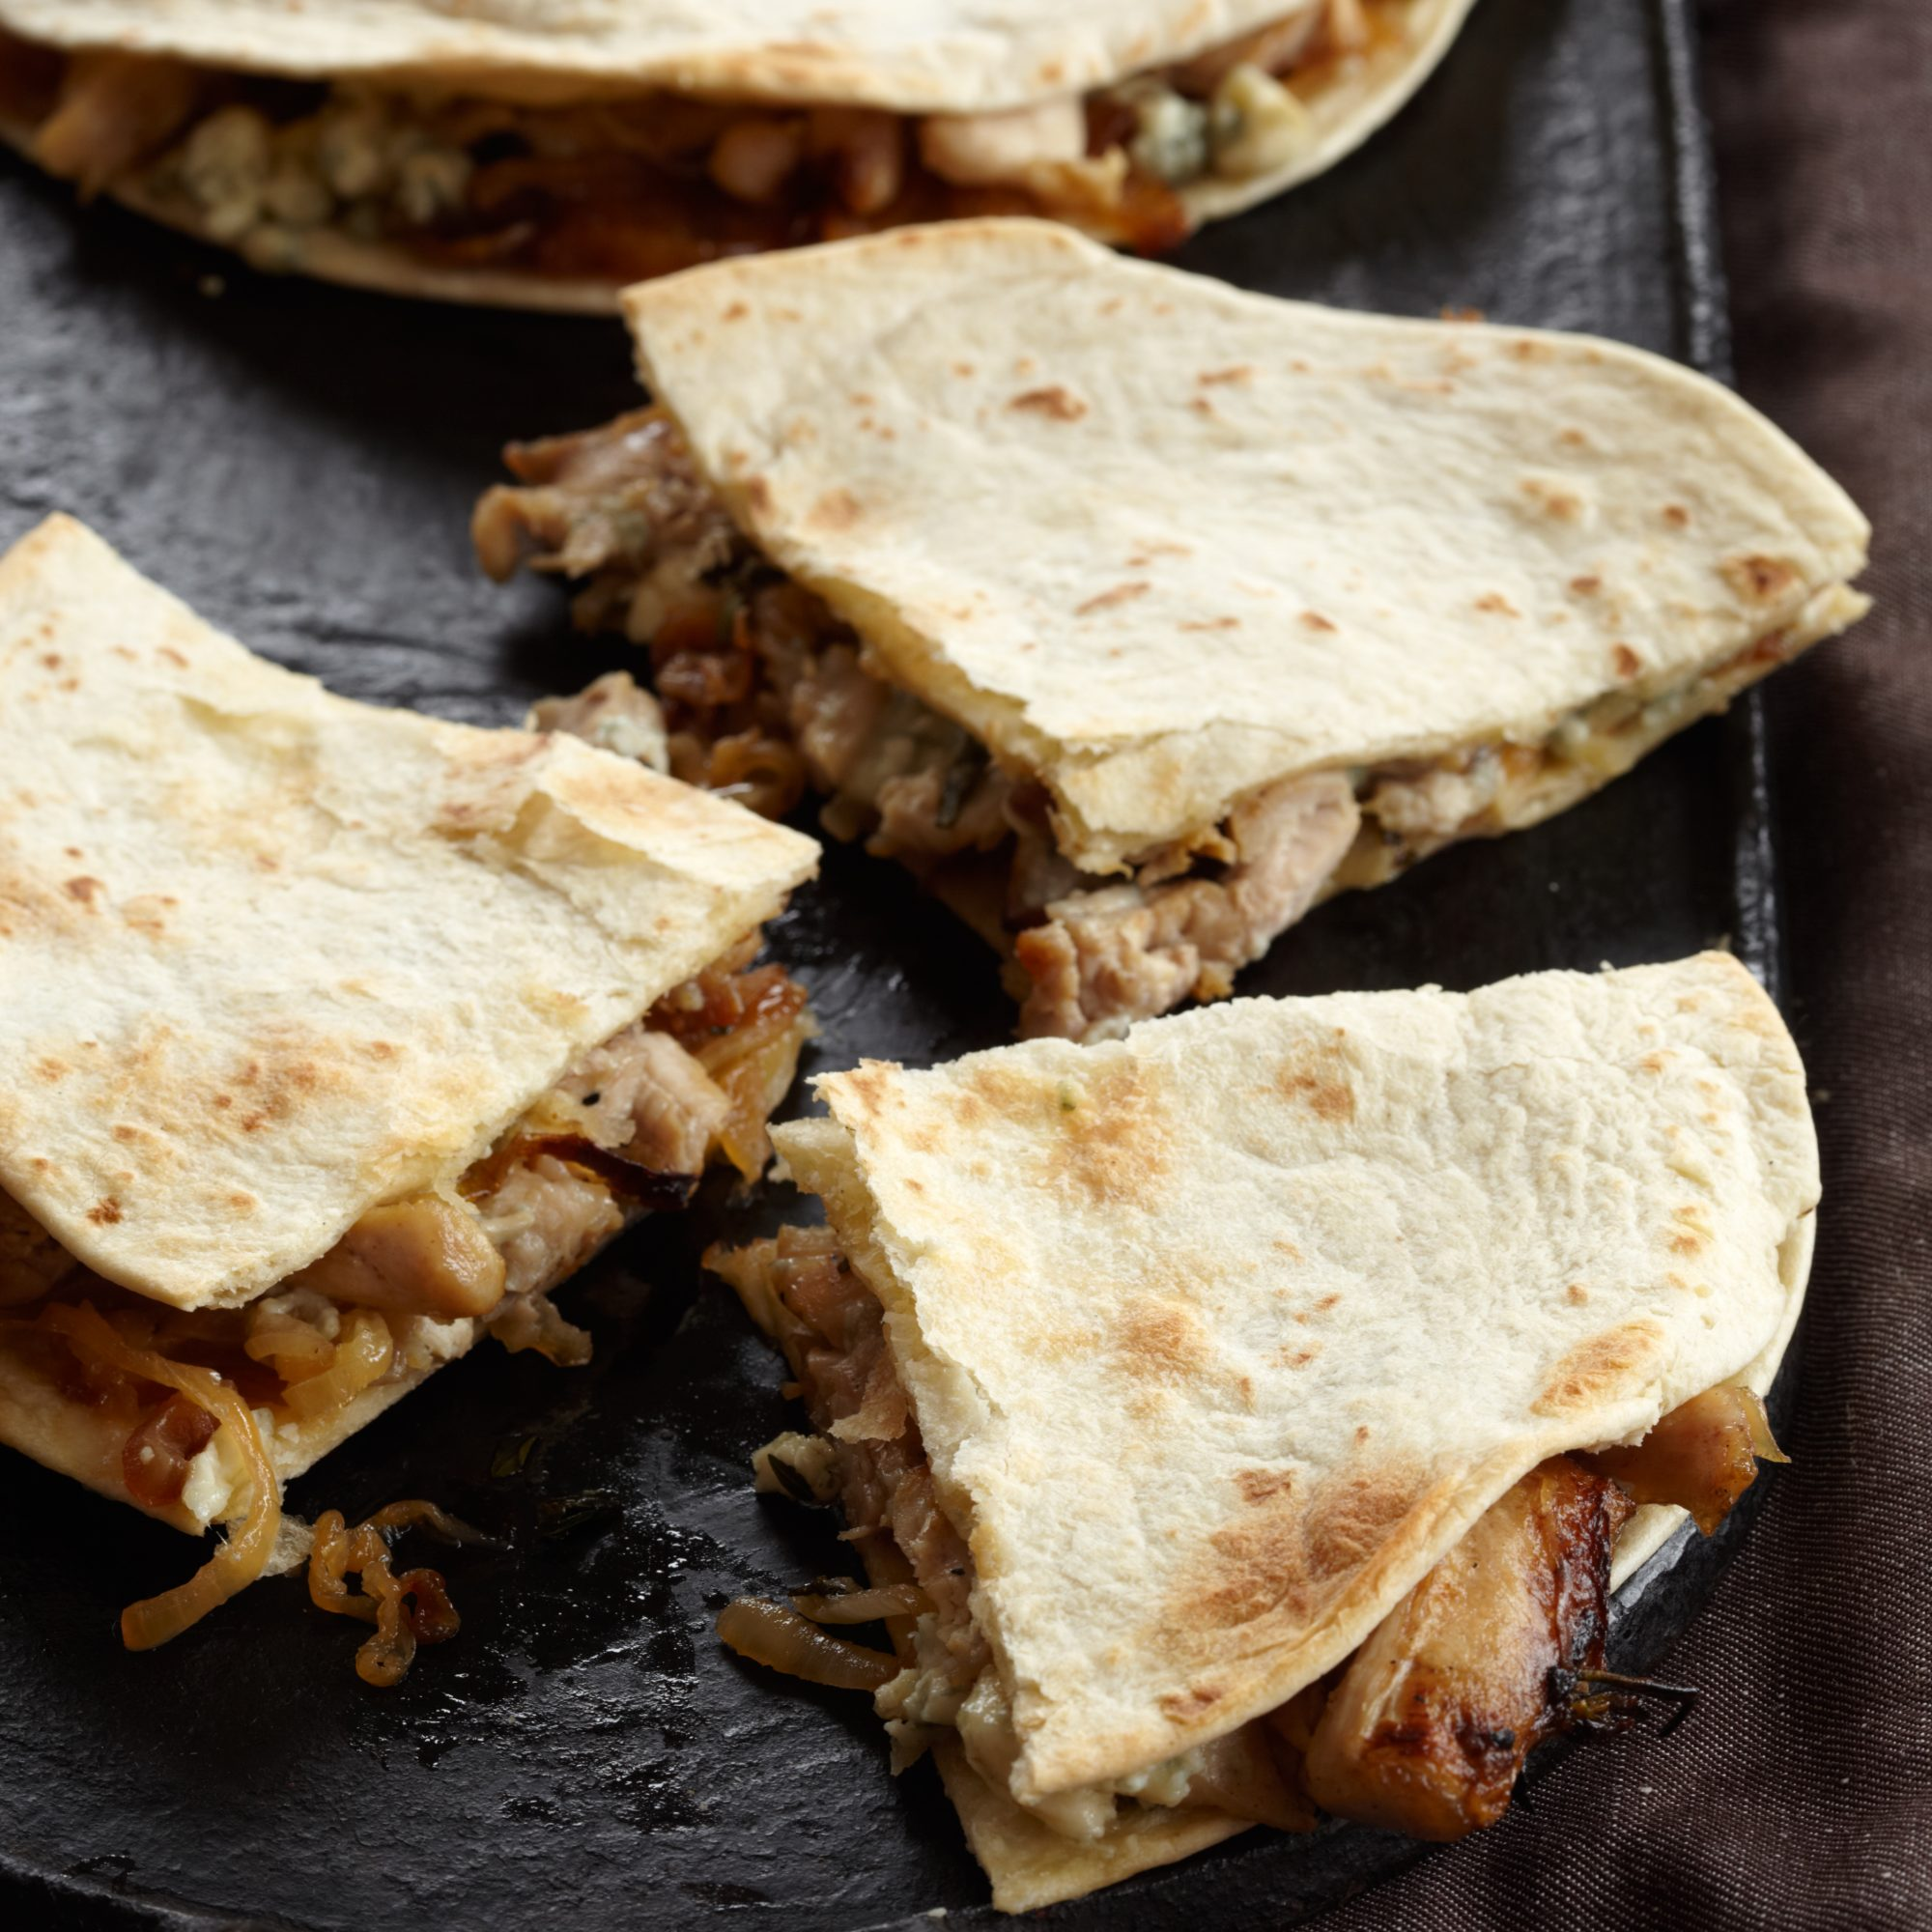 201009-r-chicken-quesadillas.jpg